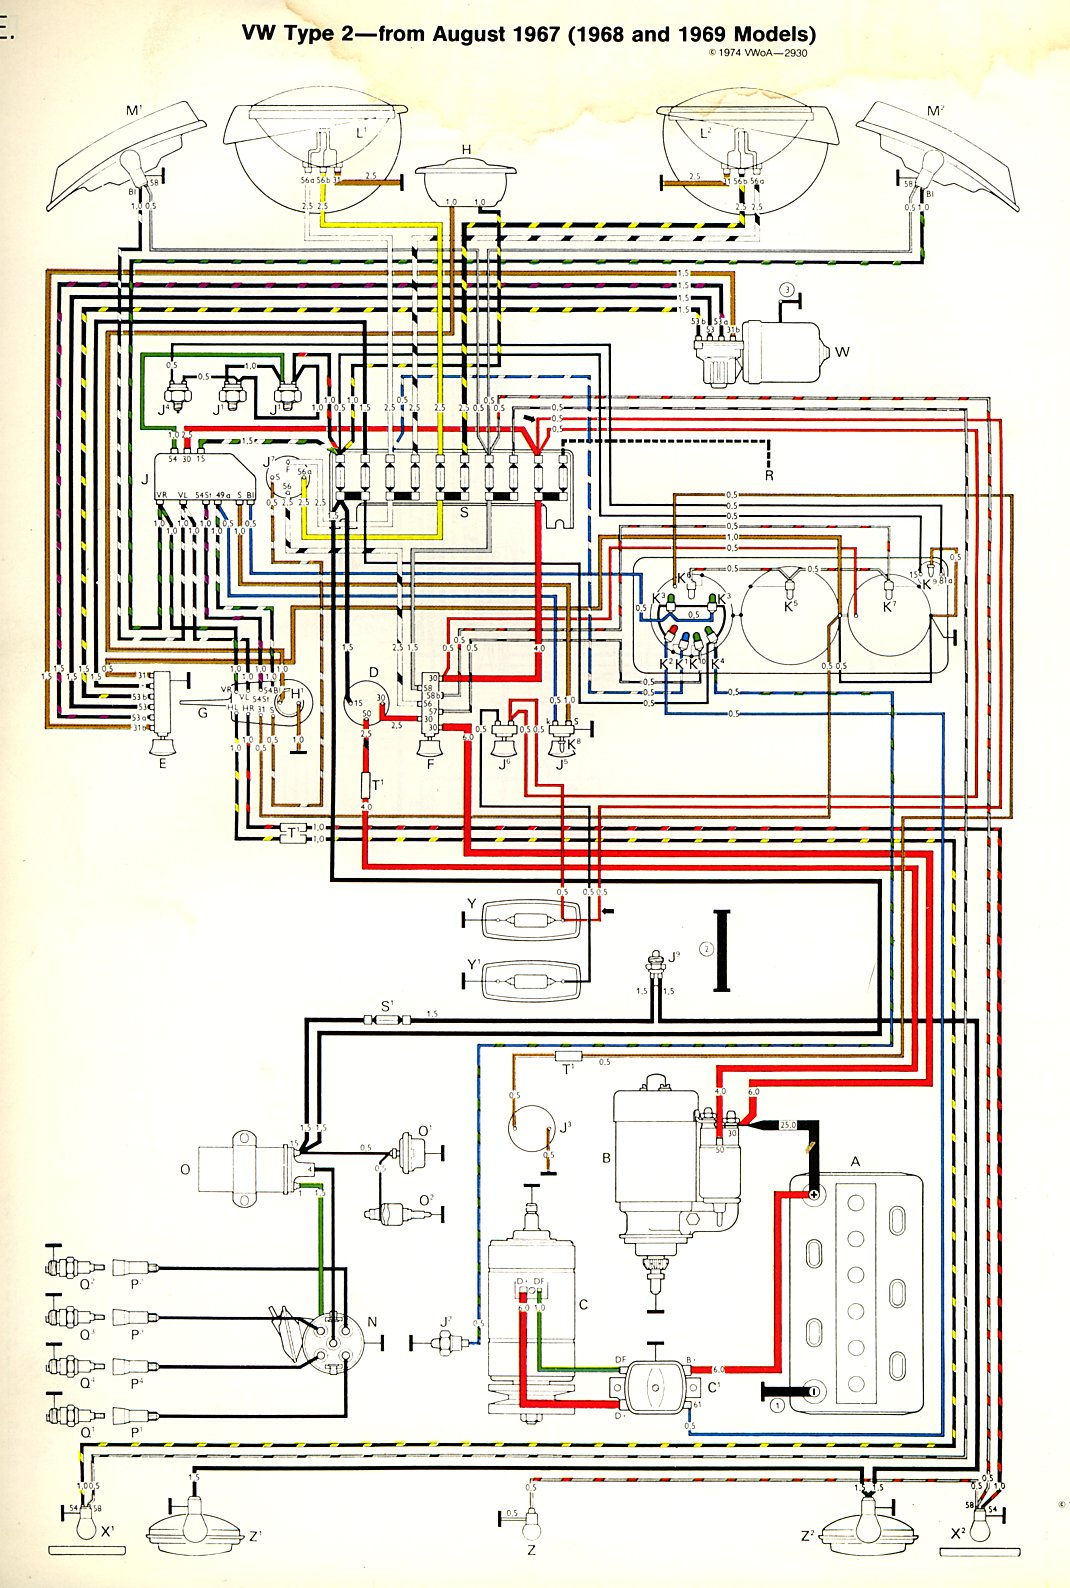 Type 2 Wiring Diagrams Circuit Diagram Also Speedometer In Addition Digital